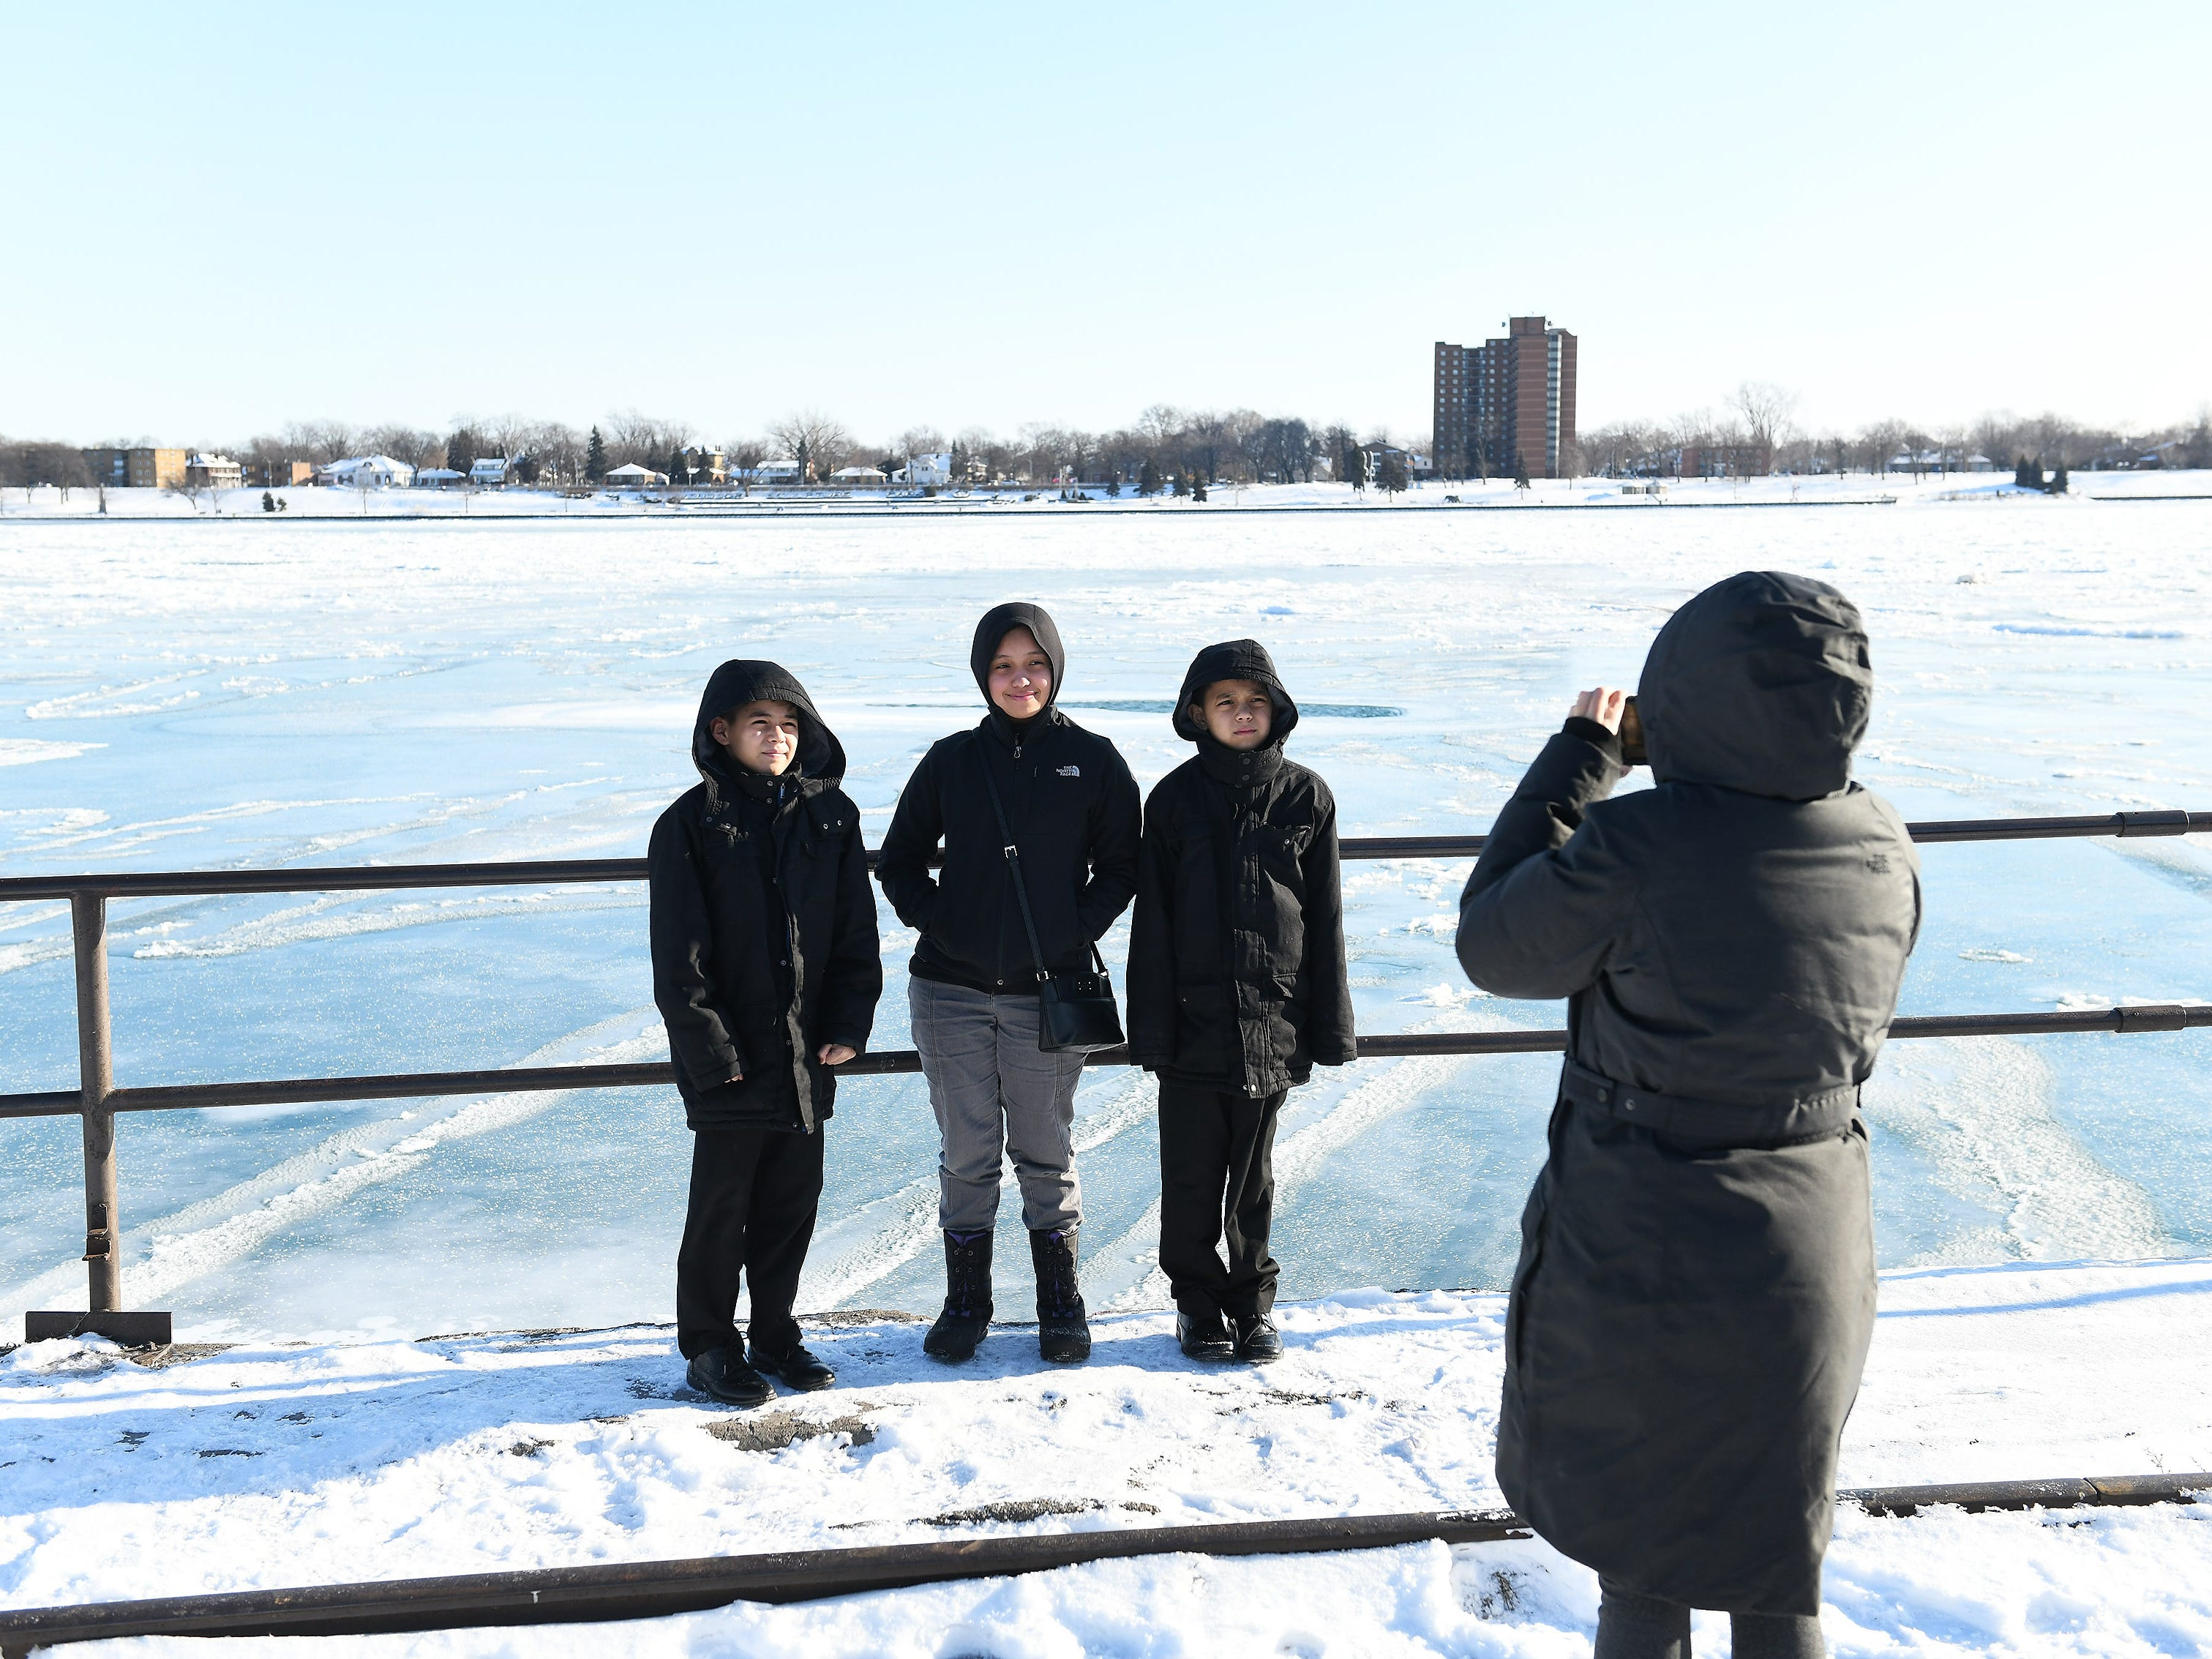 Gloria Santillan of Detroit takes photos of her children in front of the mostly frozen Detroit River.  They are, from left, Mattius Santillan, 10, Arabelle Santillan, 13, and Joaquin Santillan, 8. Santillan, who homeschools her children, says they often come down to the river.